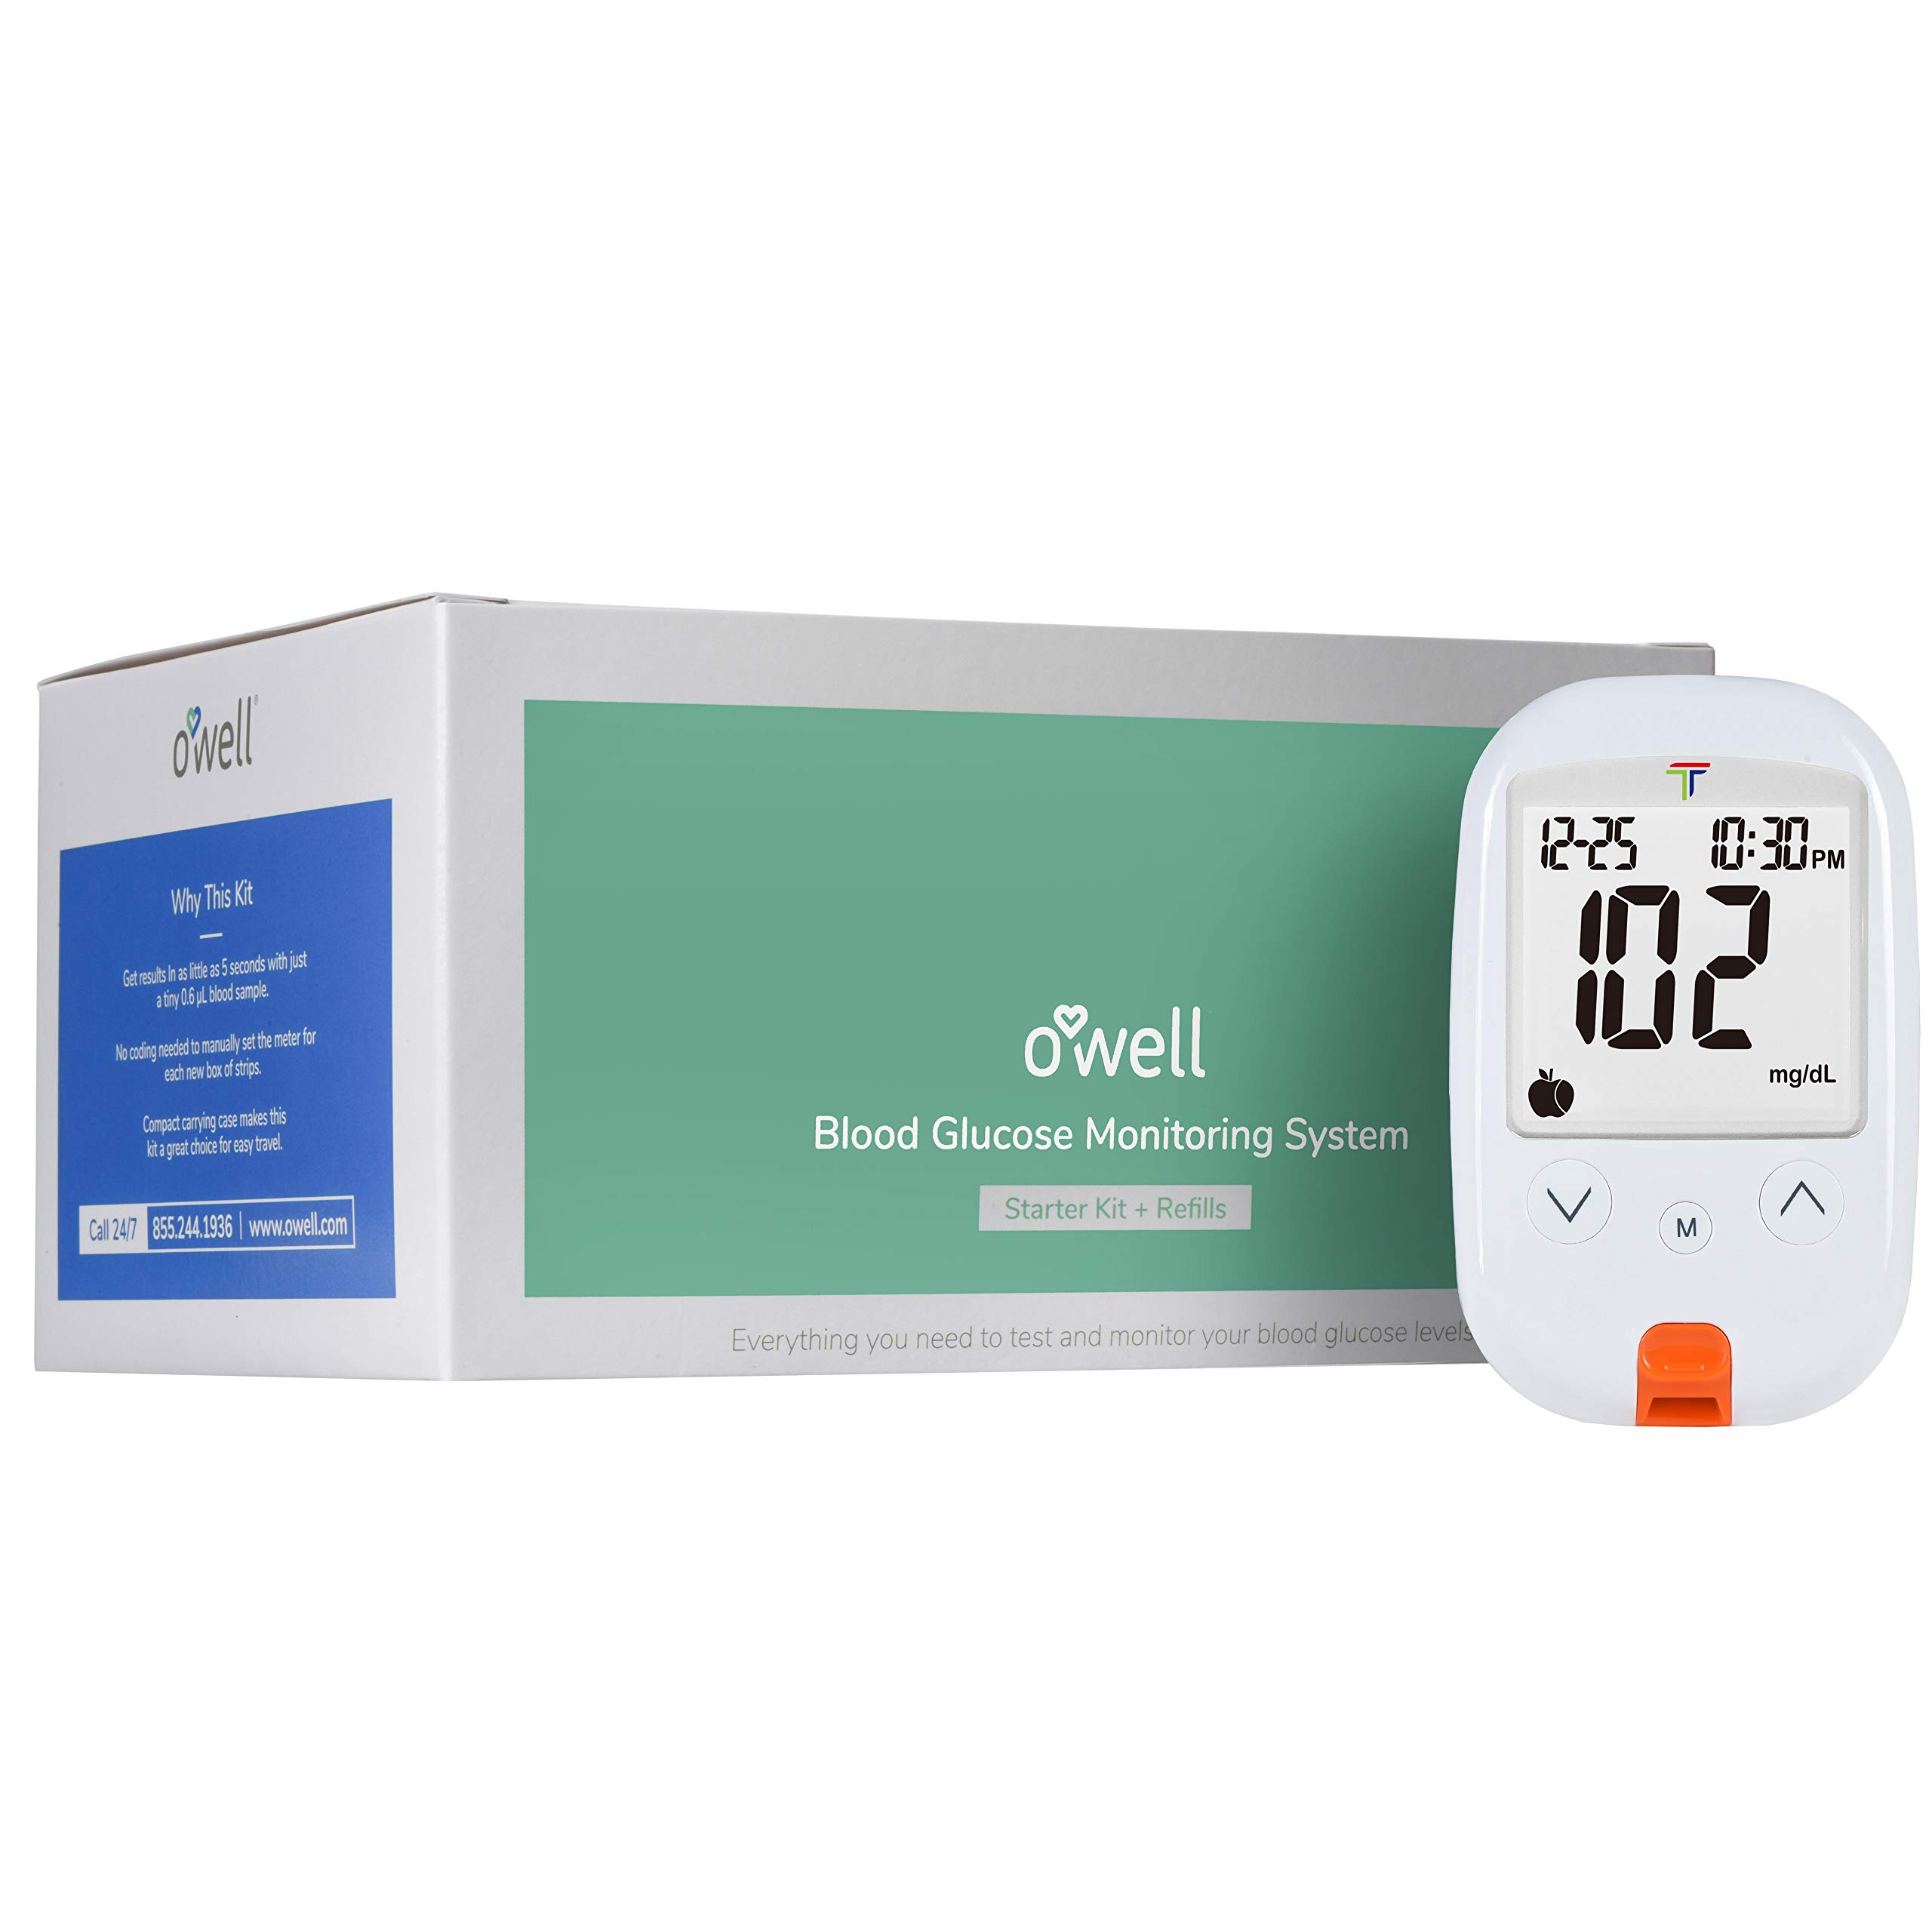 O'WELL Tyson Blood Glucose Monitoring Kit | Starter Kit + 100 Refills | Tyson HT100 Meter, 100 Test Strips, 100 Lancets, Lancing Device, Control Solution, Log Book, Manuals and Carry Case by OWell